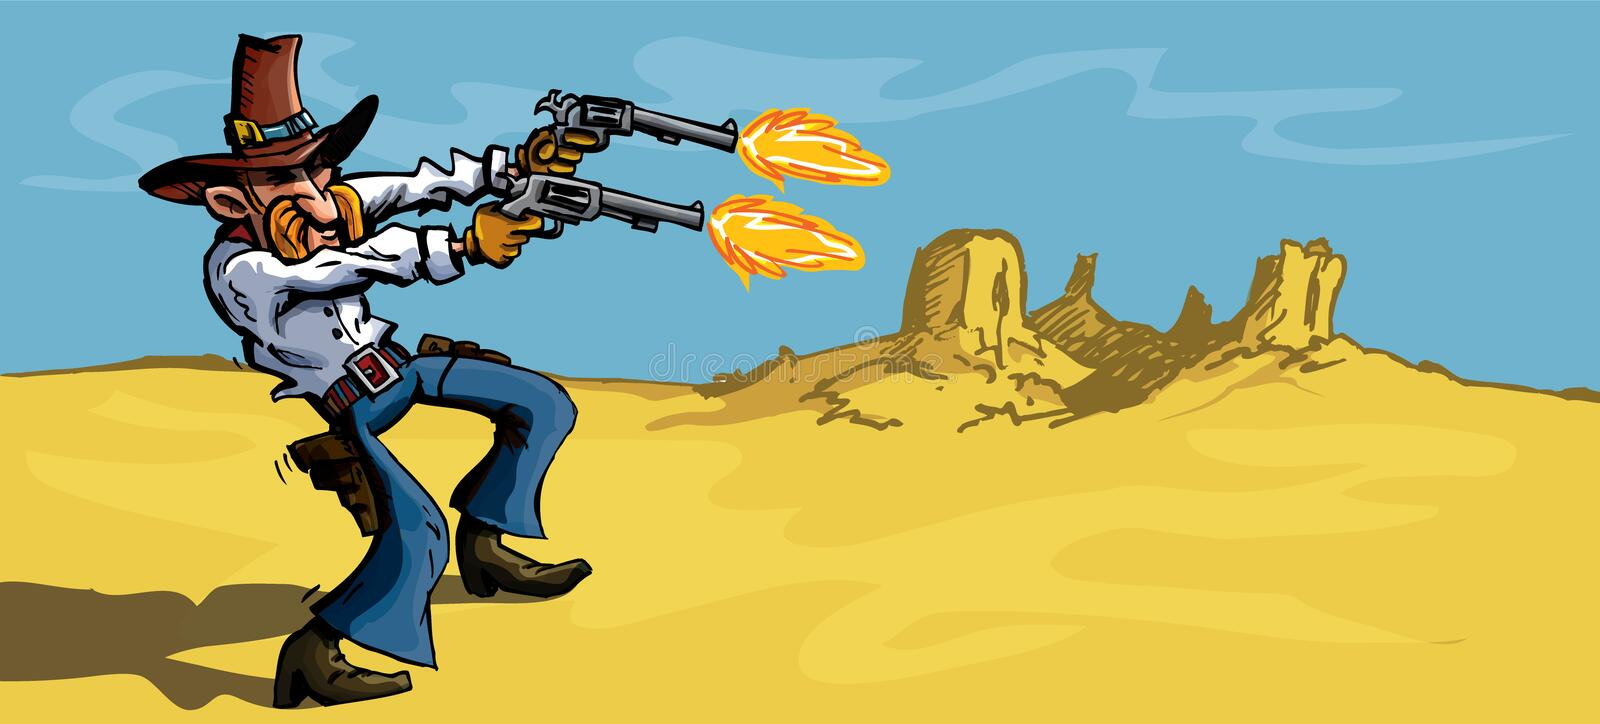 Cartoon cowboy in the desert firing his guns vector illustration